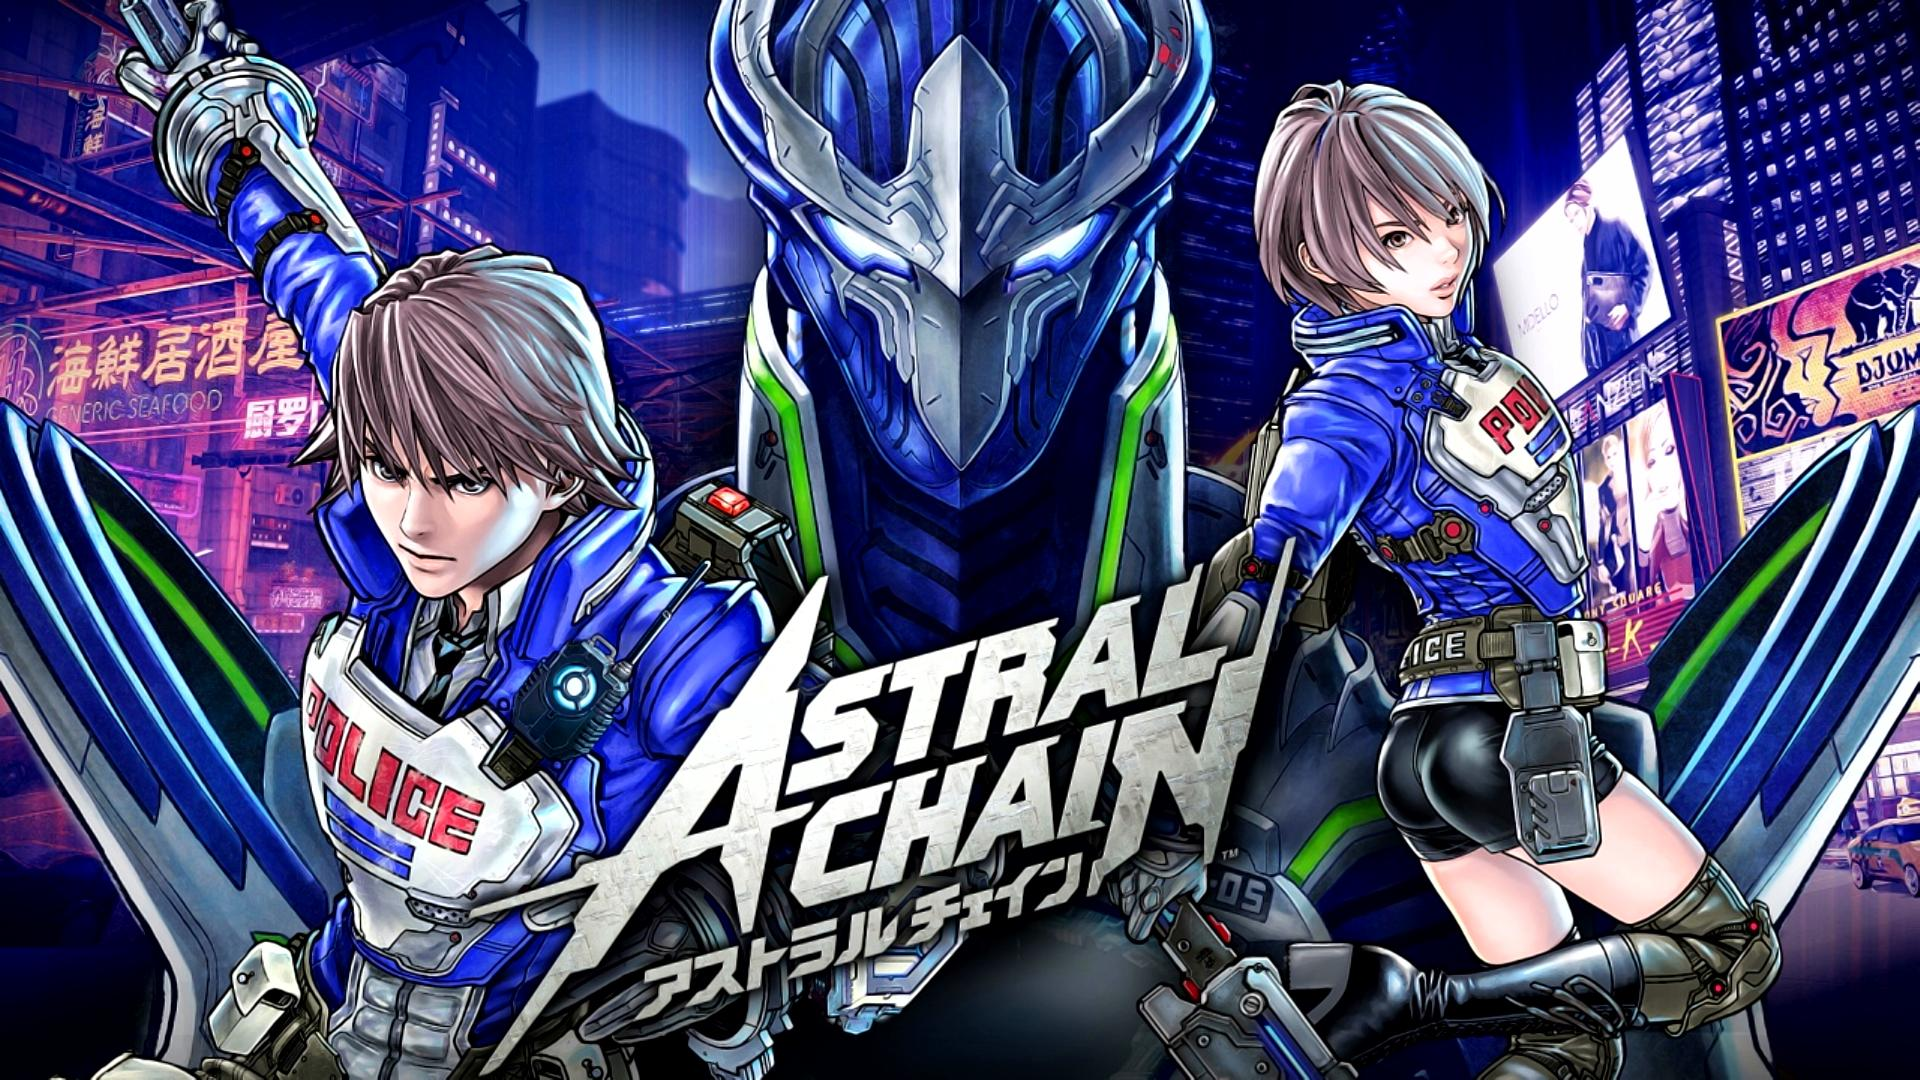 Astral-Chain_Artwork